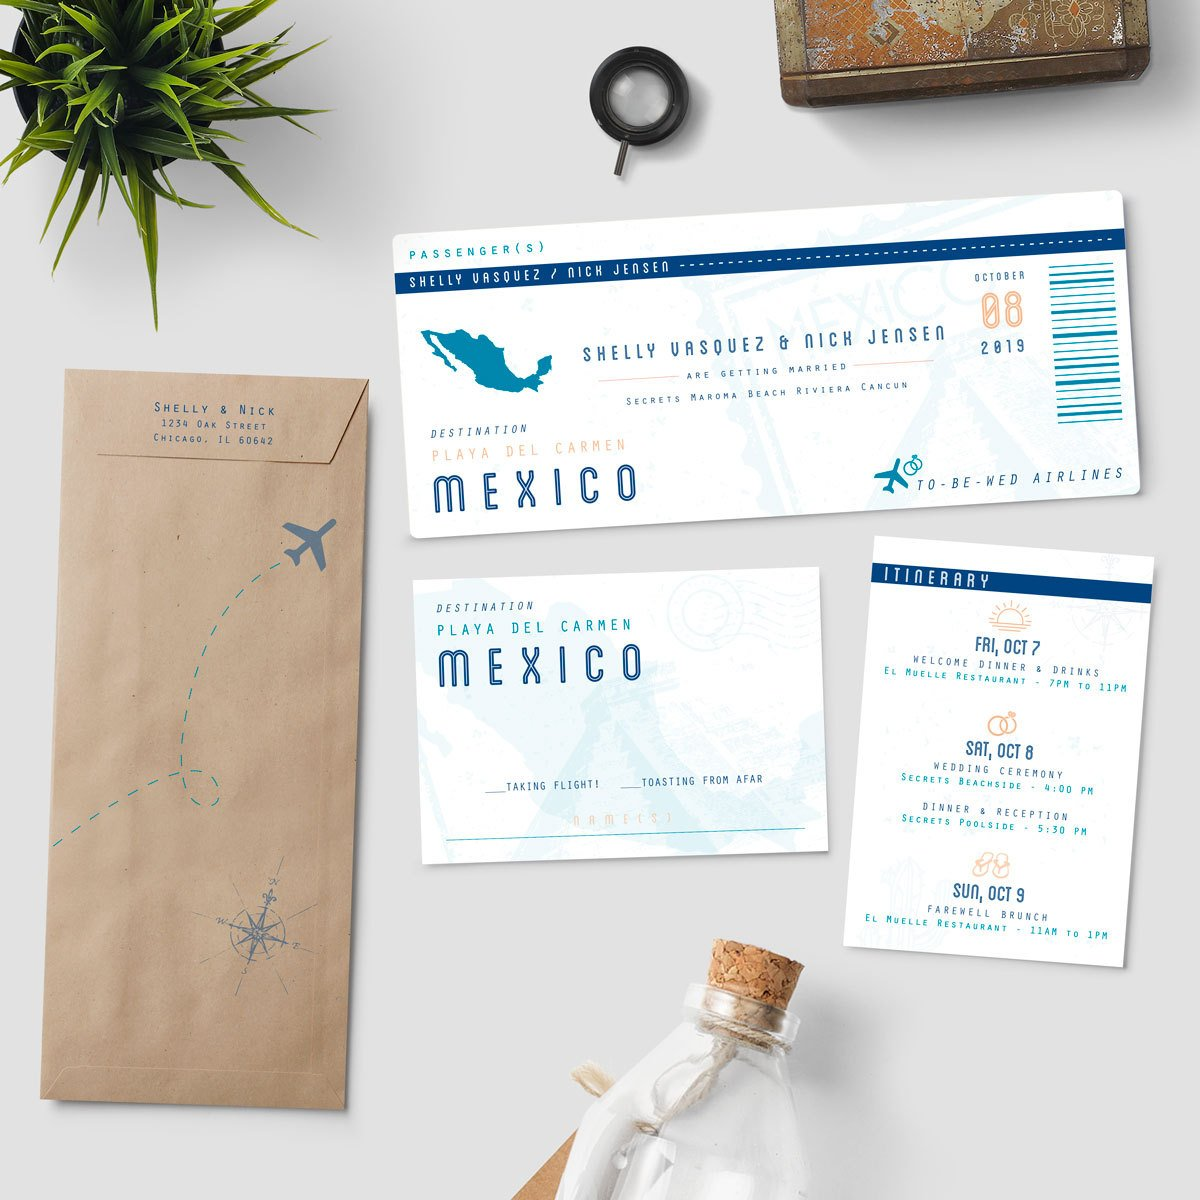 destination wedding ceremony boarding pass ticket example